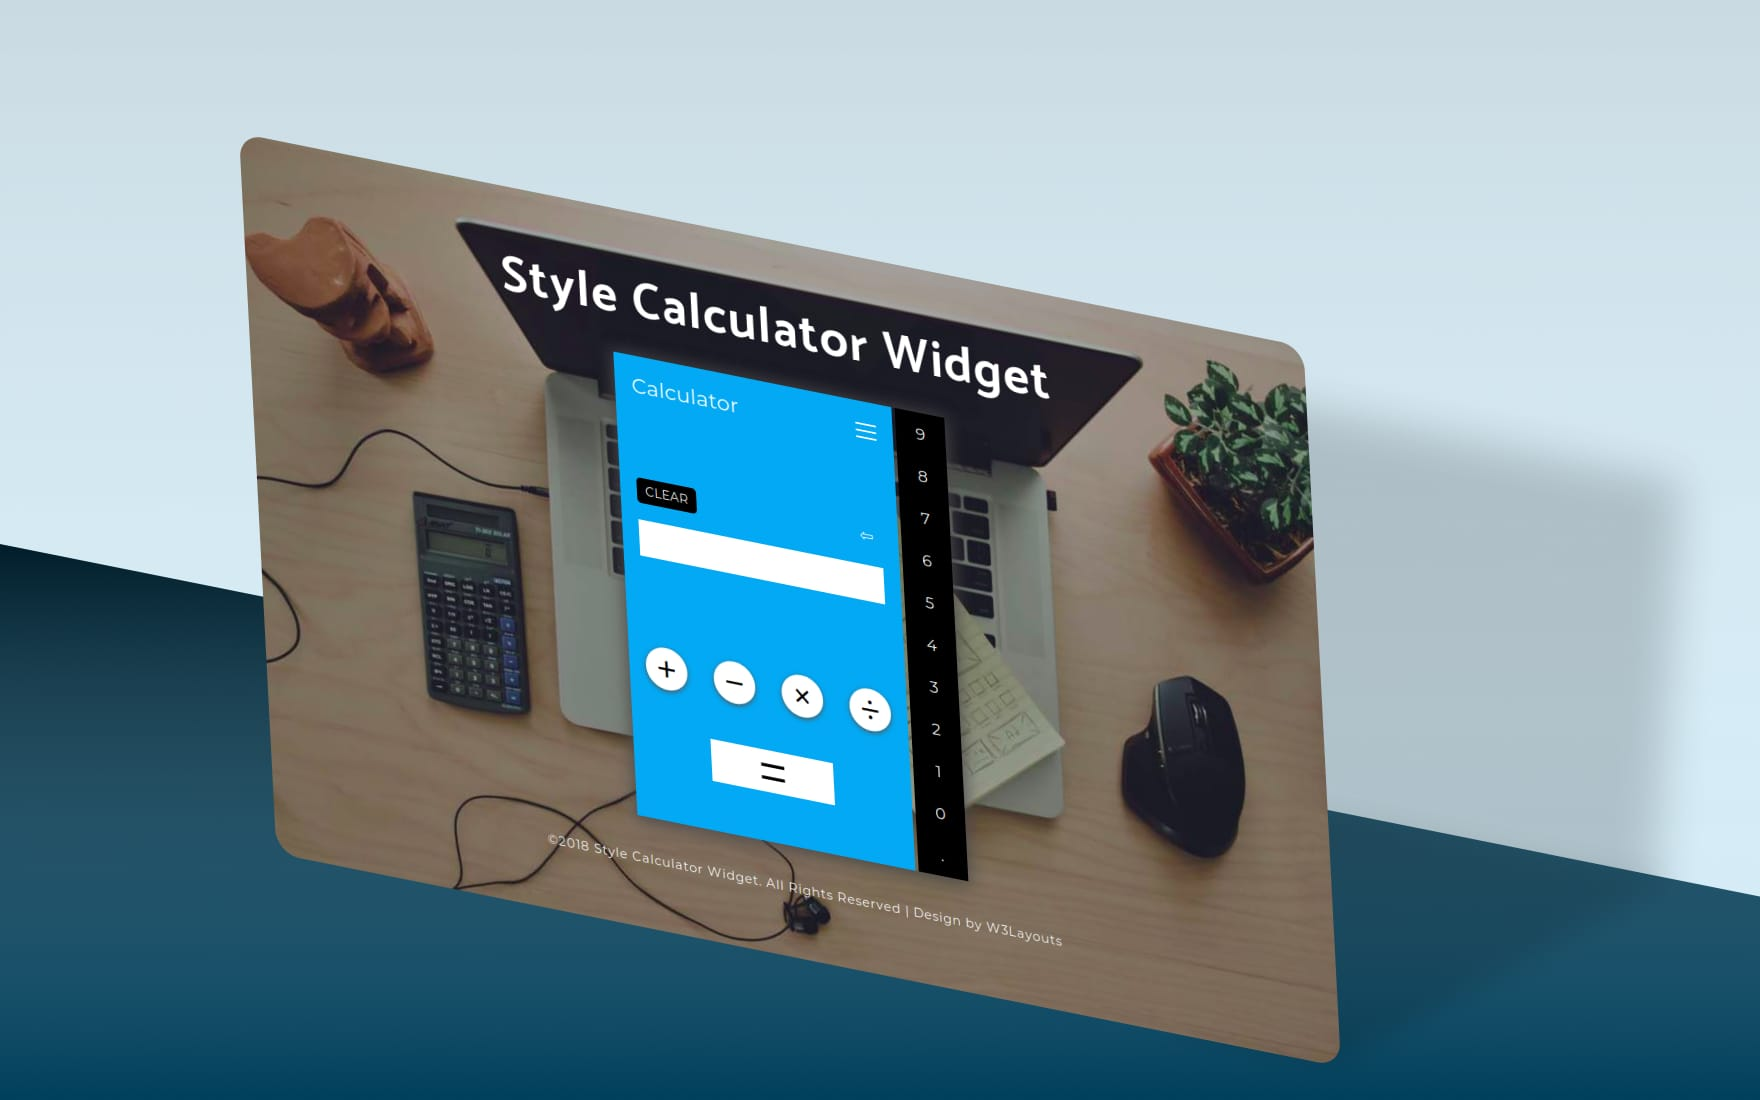 Style Calculator